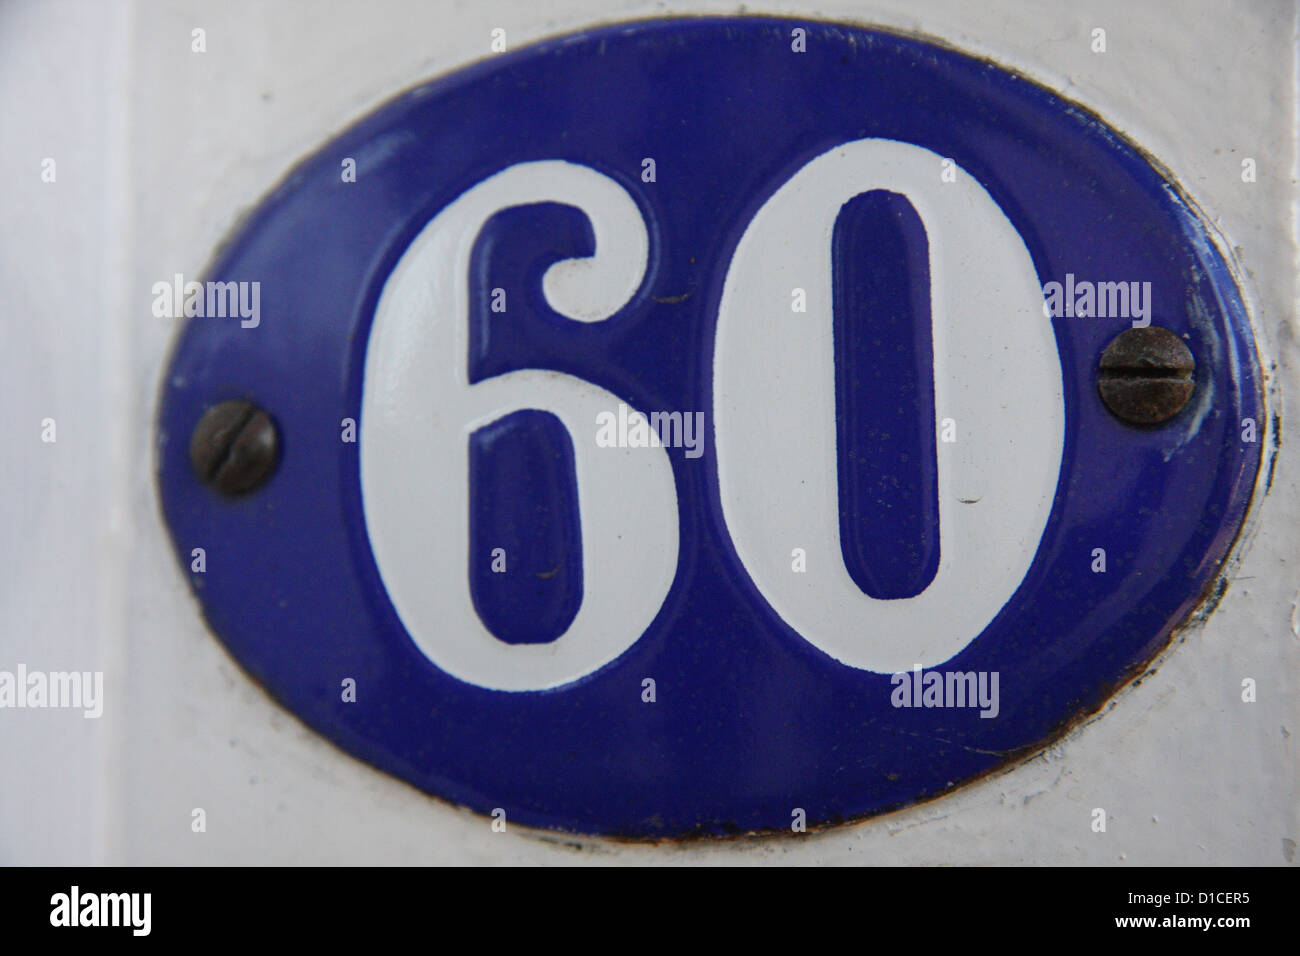 Number 60 - Stock Image